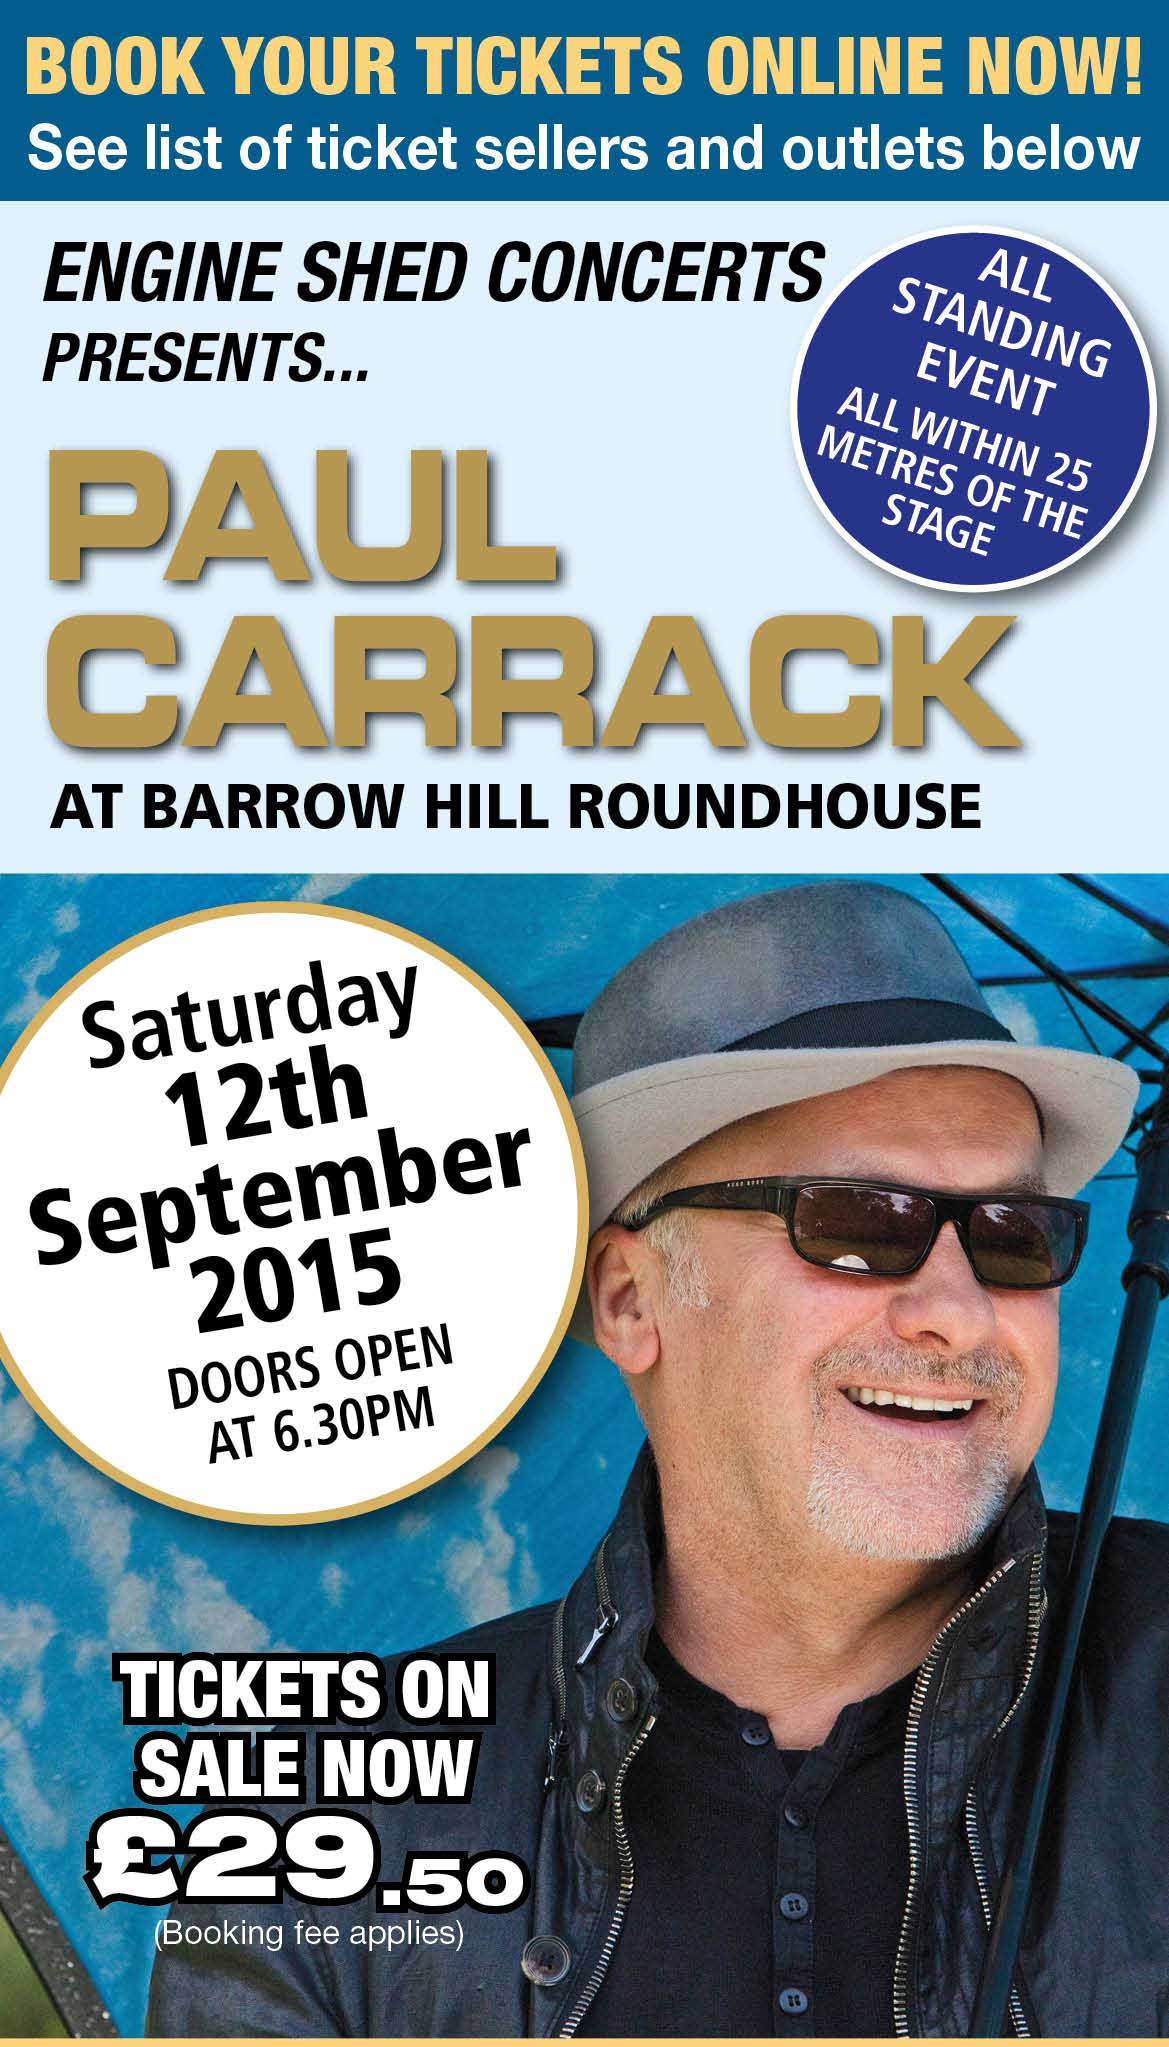 Paul Carrack Live in concert at Barrow Hill Roundhouse, Chesterfield, Derbyshire